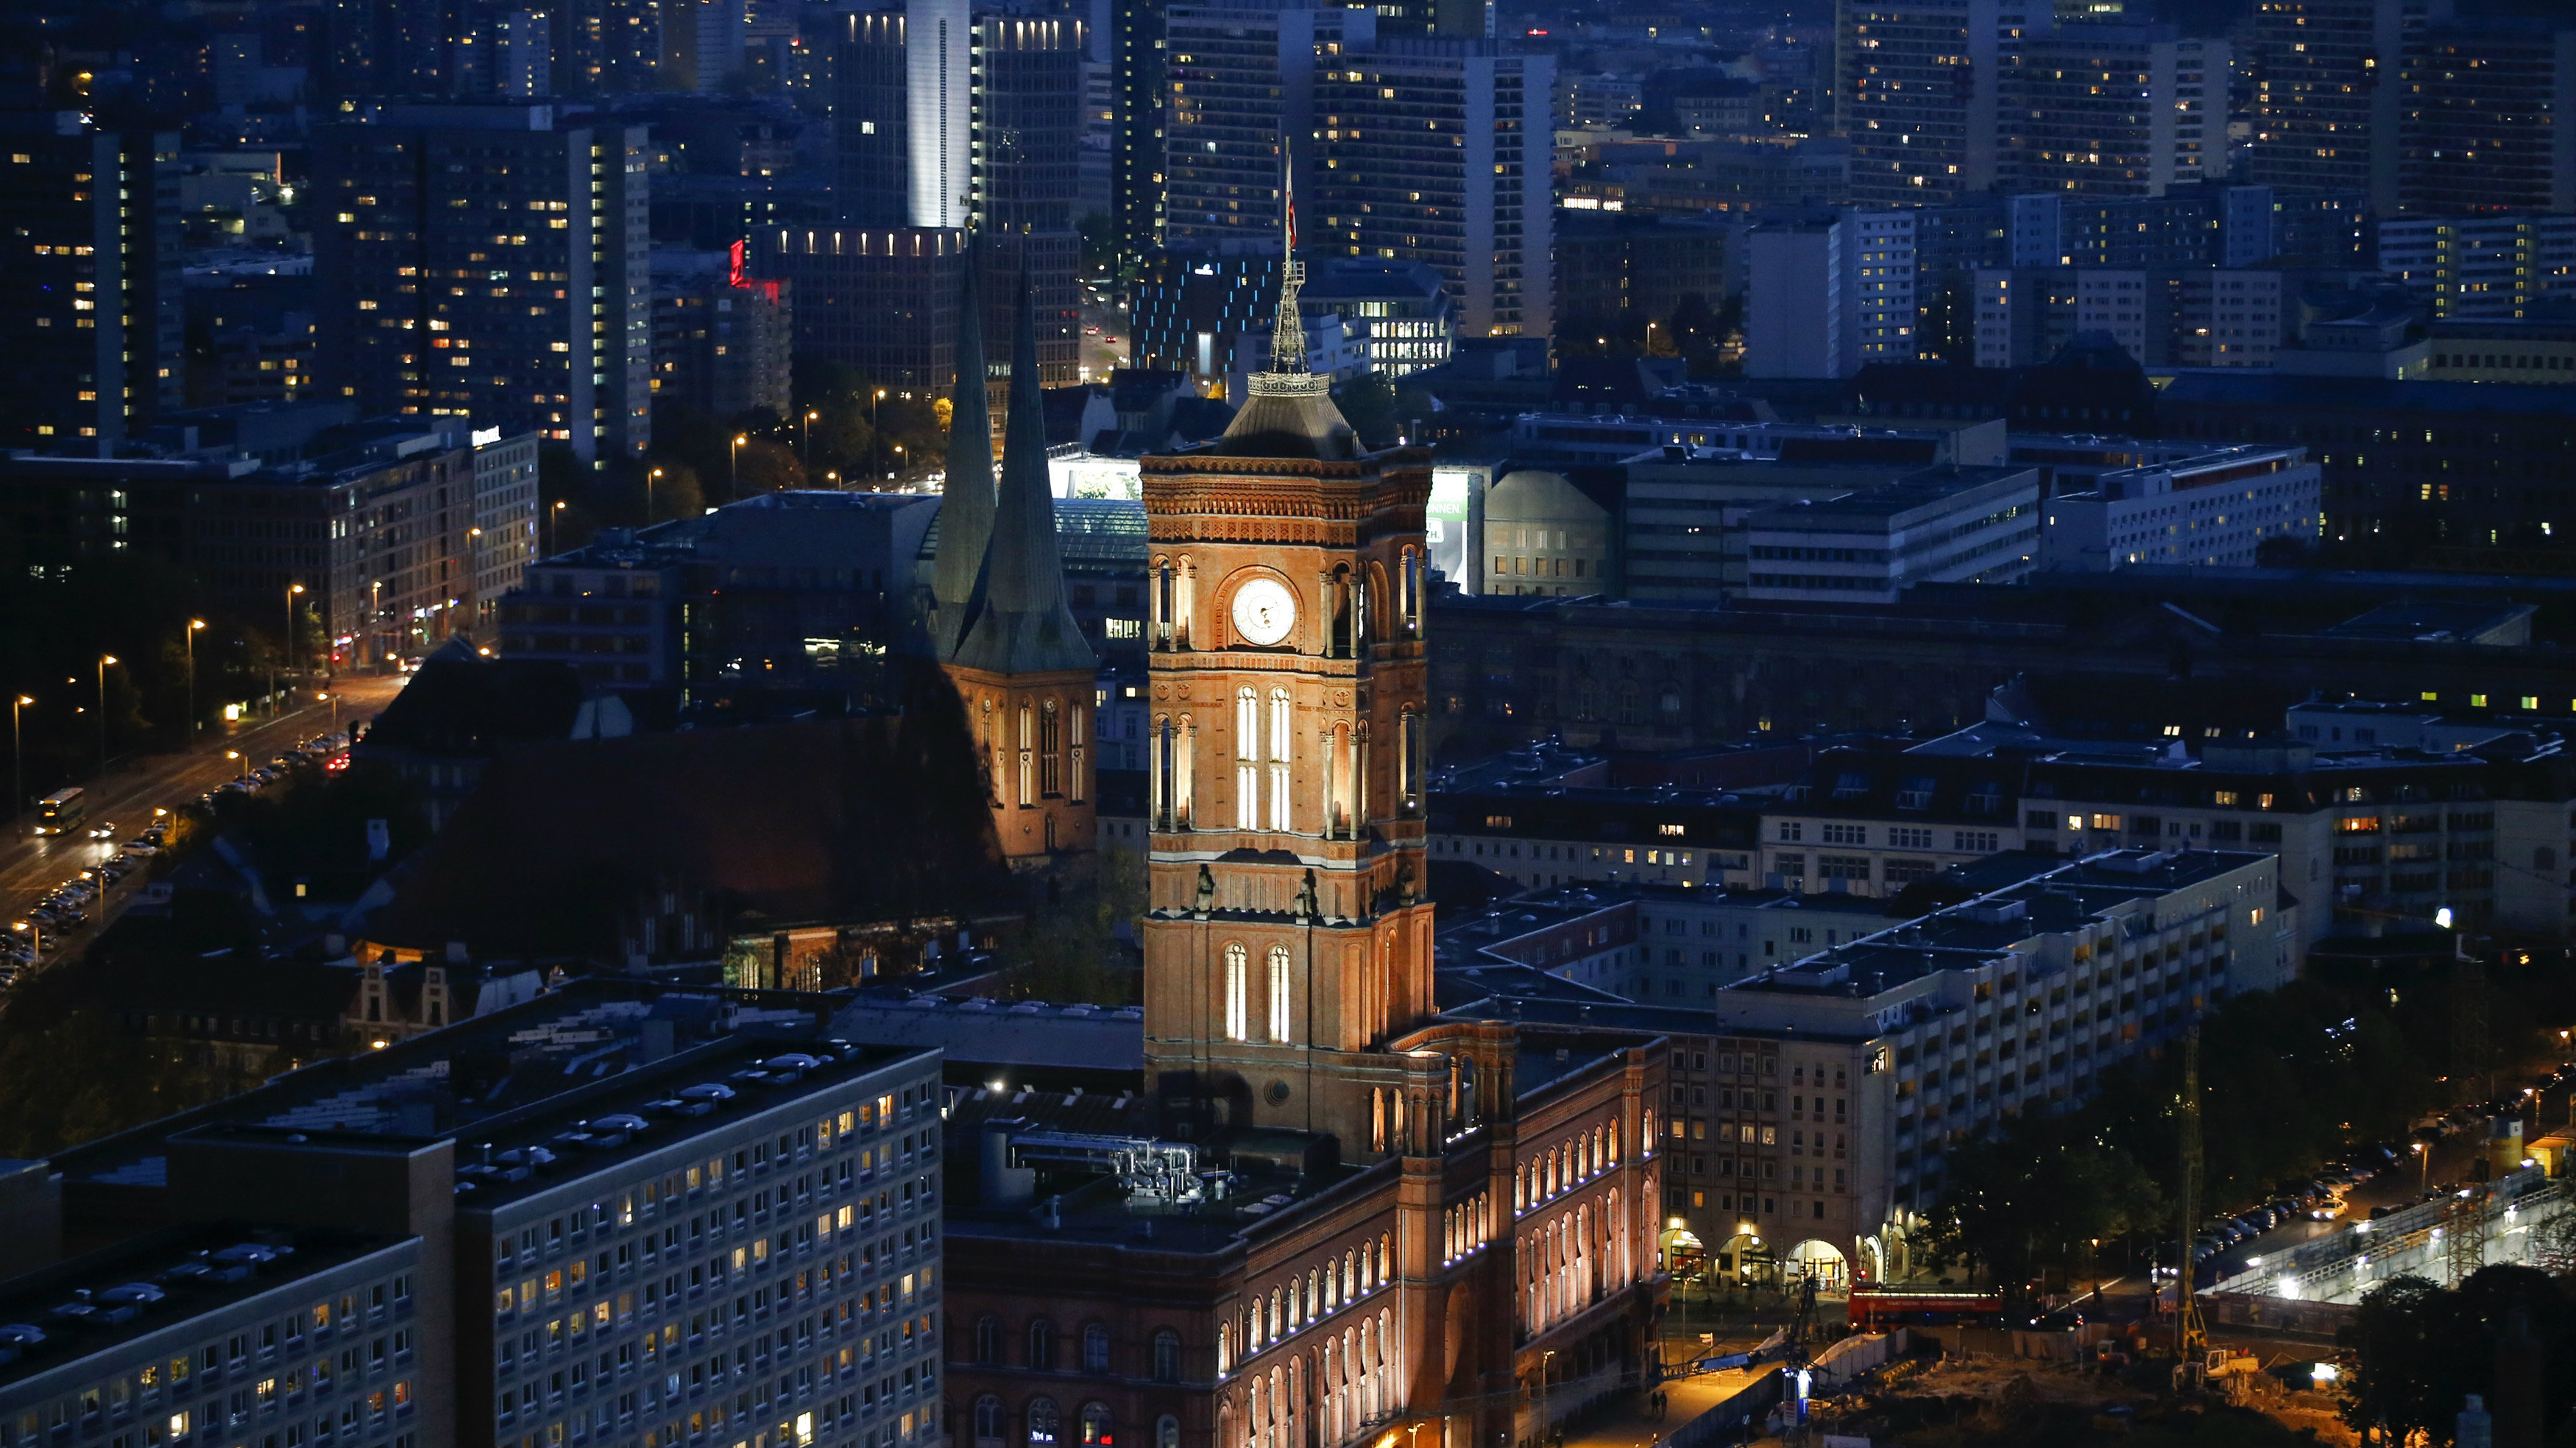 Berlin, Germany has the fastest-rising property prices in